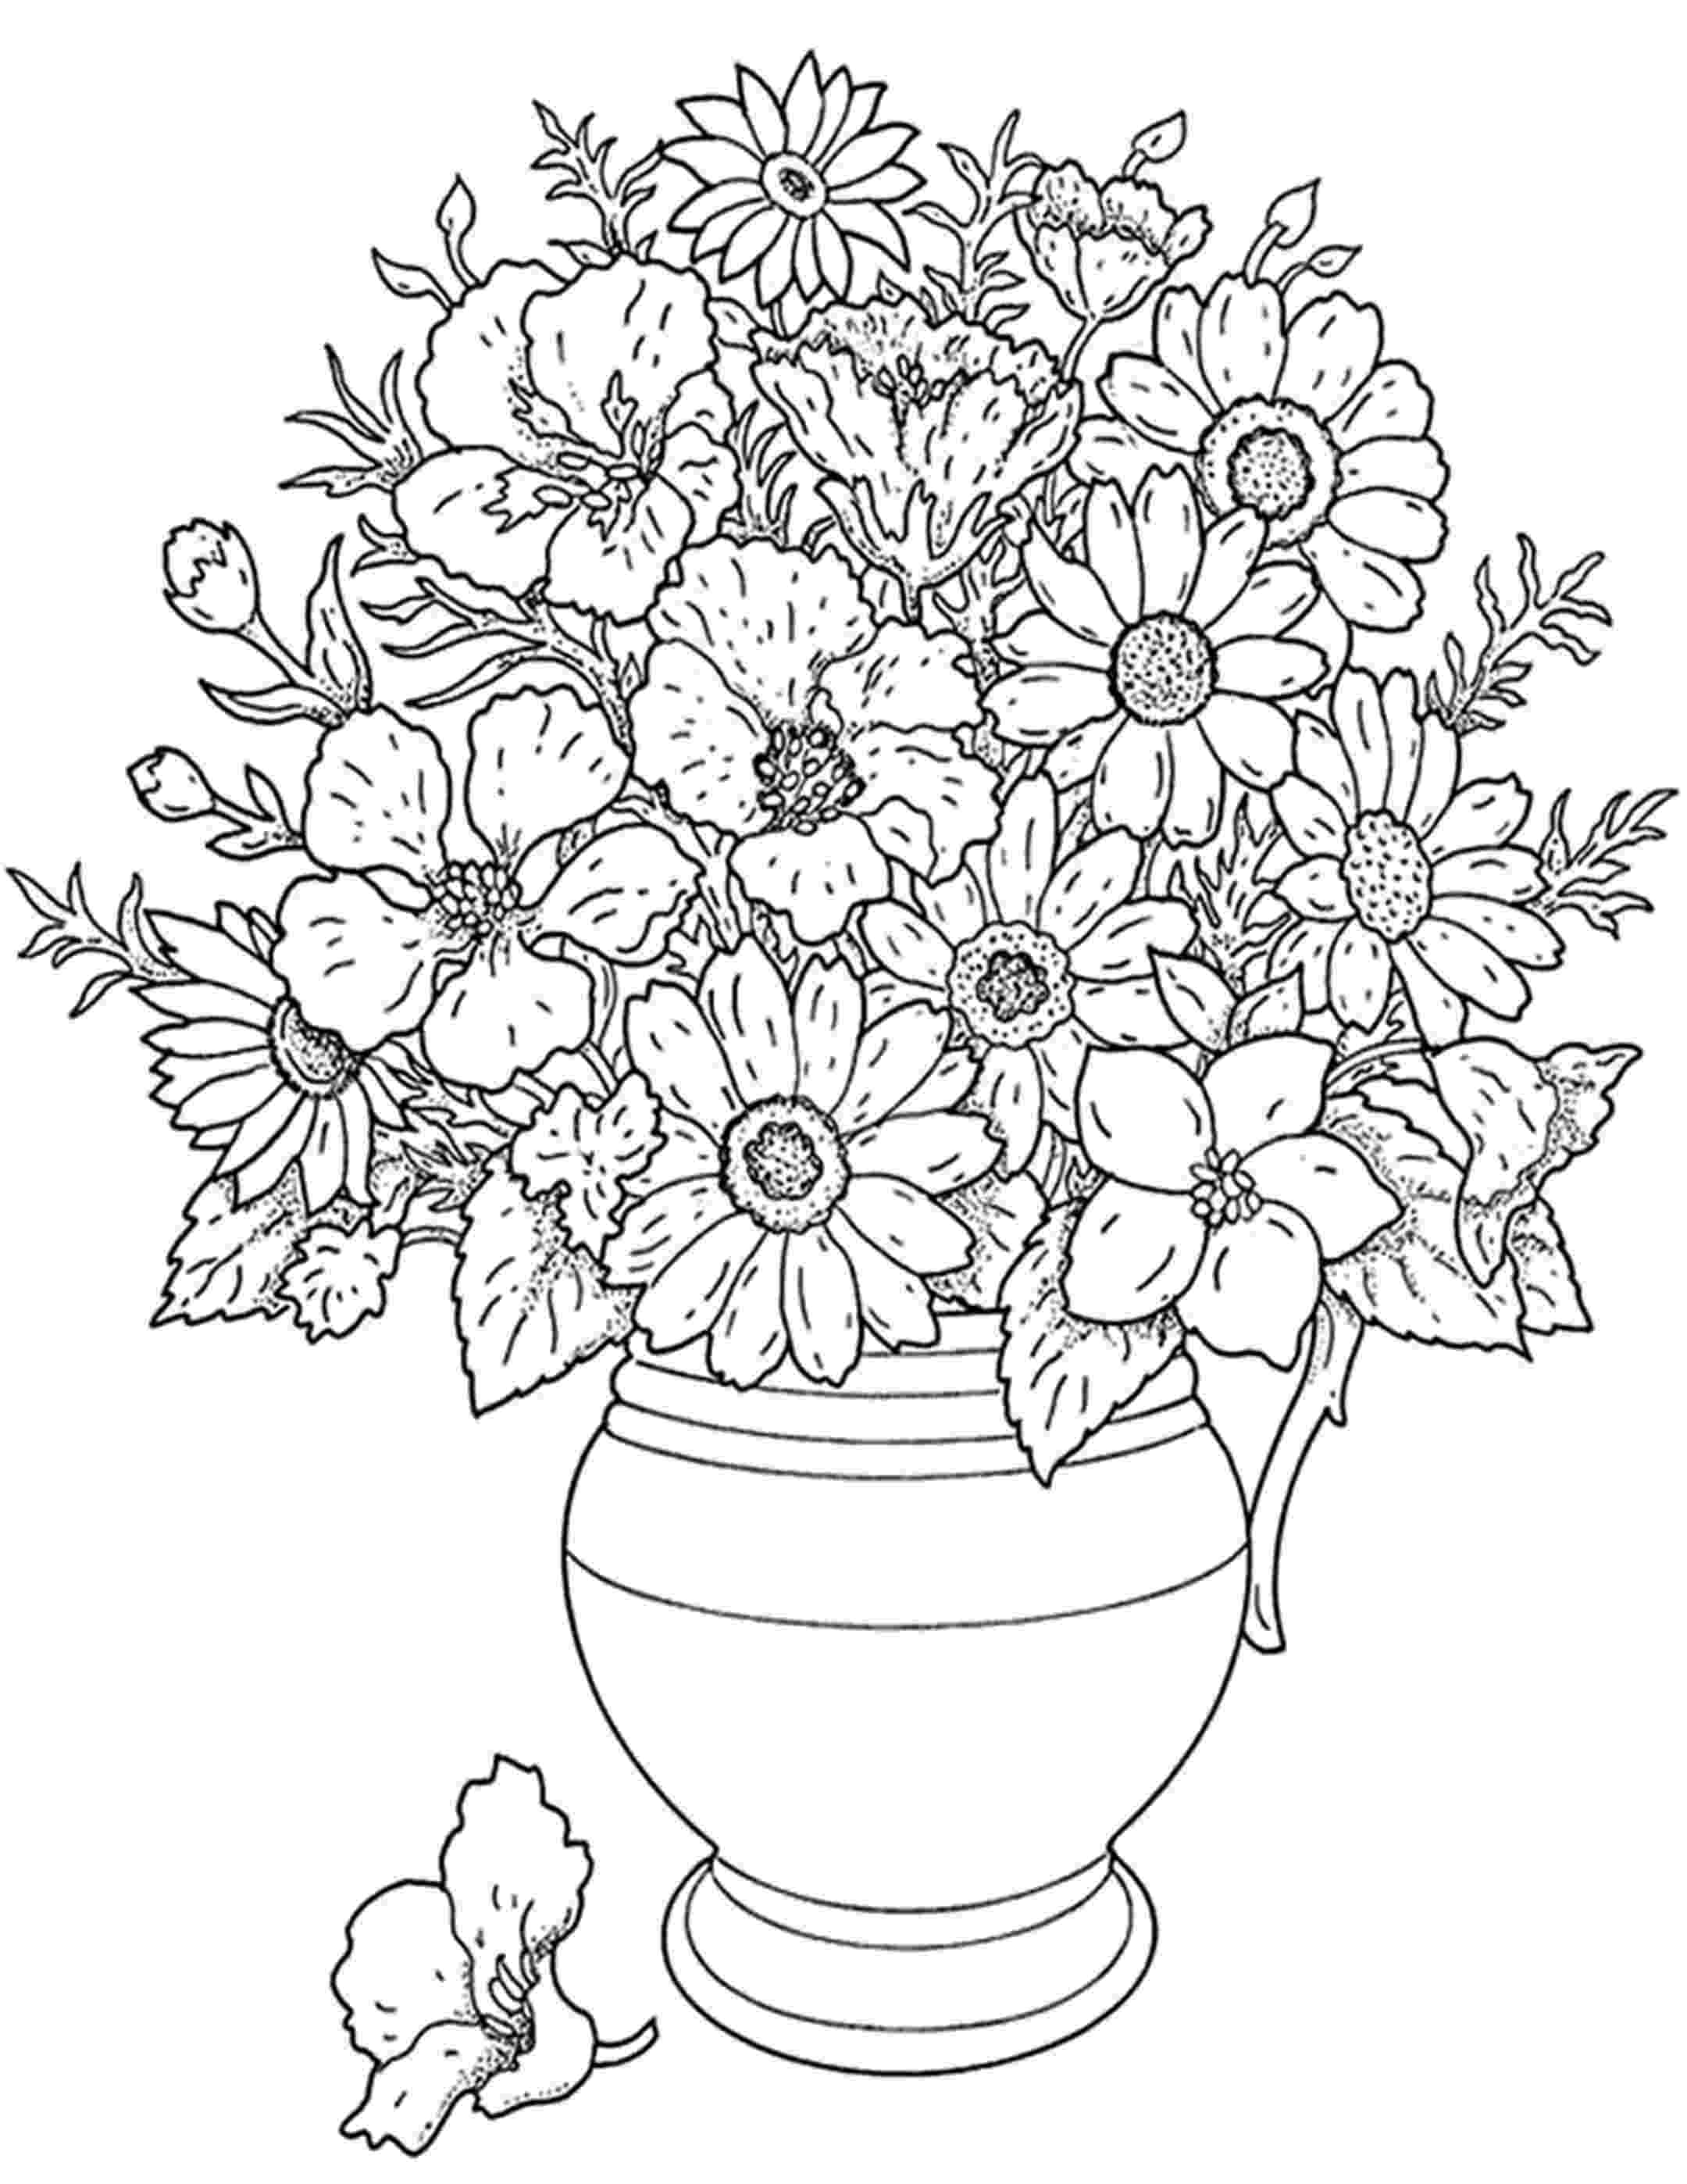 flower printables free printable flower coloring pages for kids cool2bkids printables flower